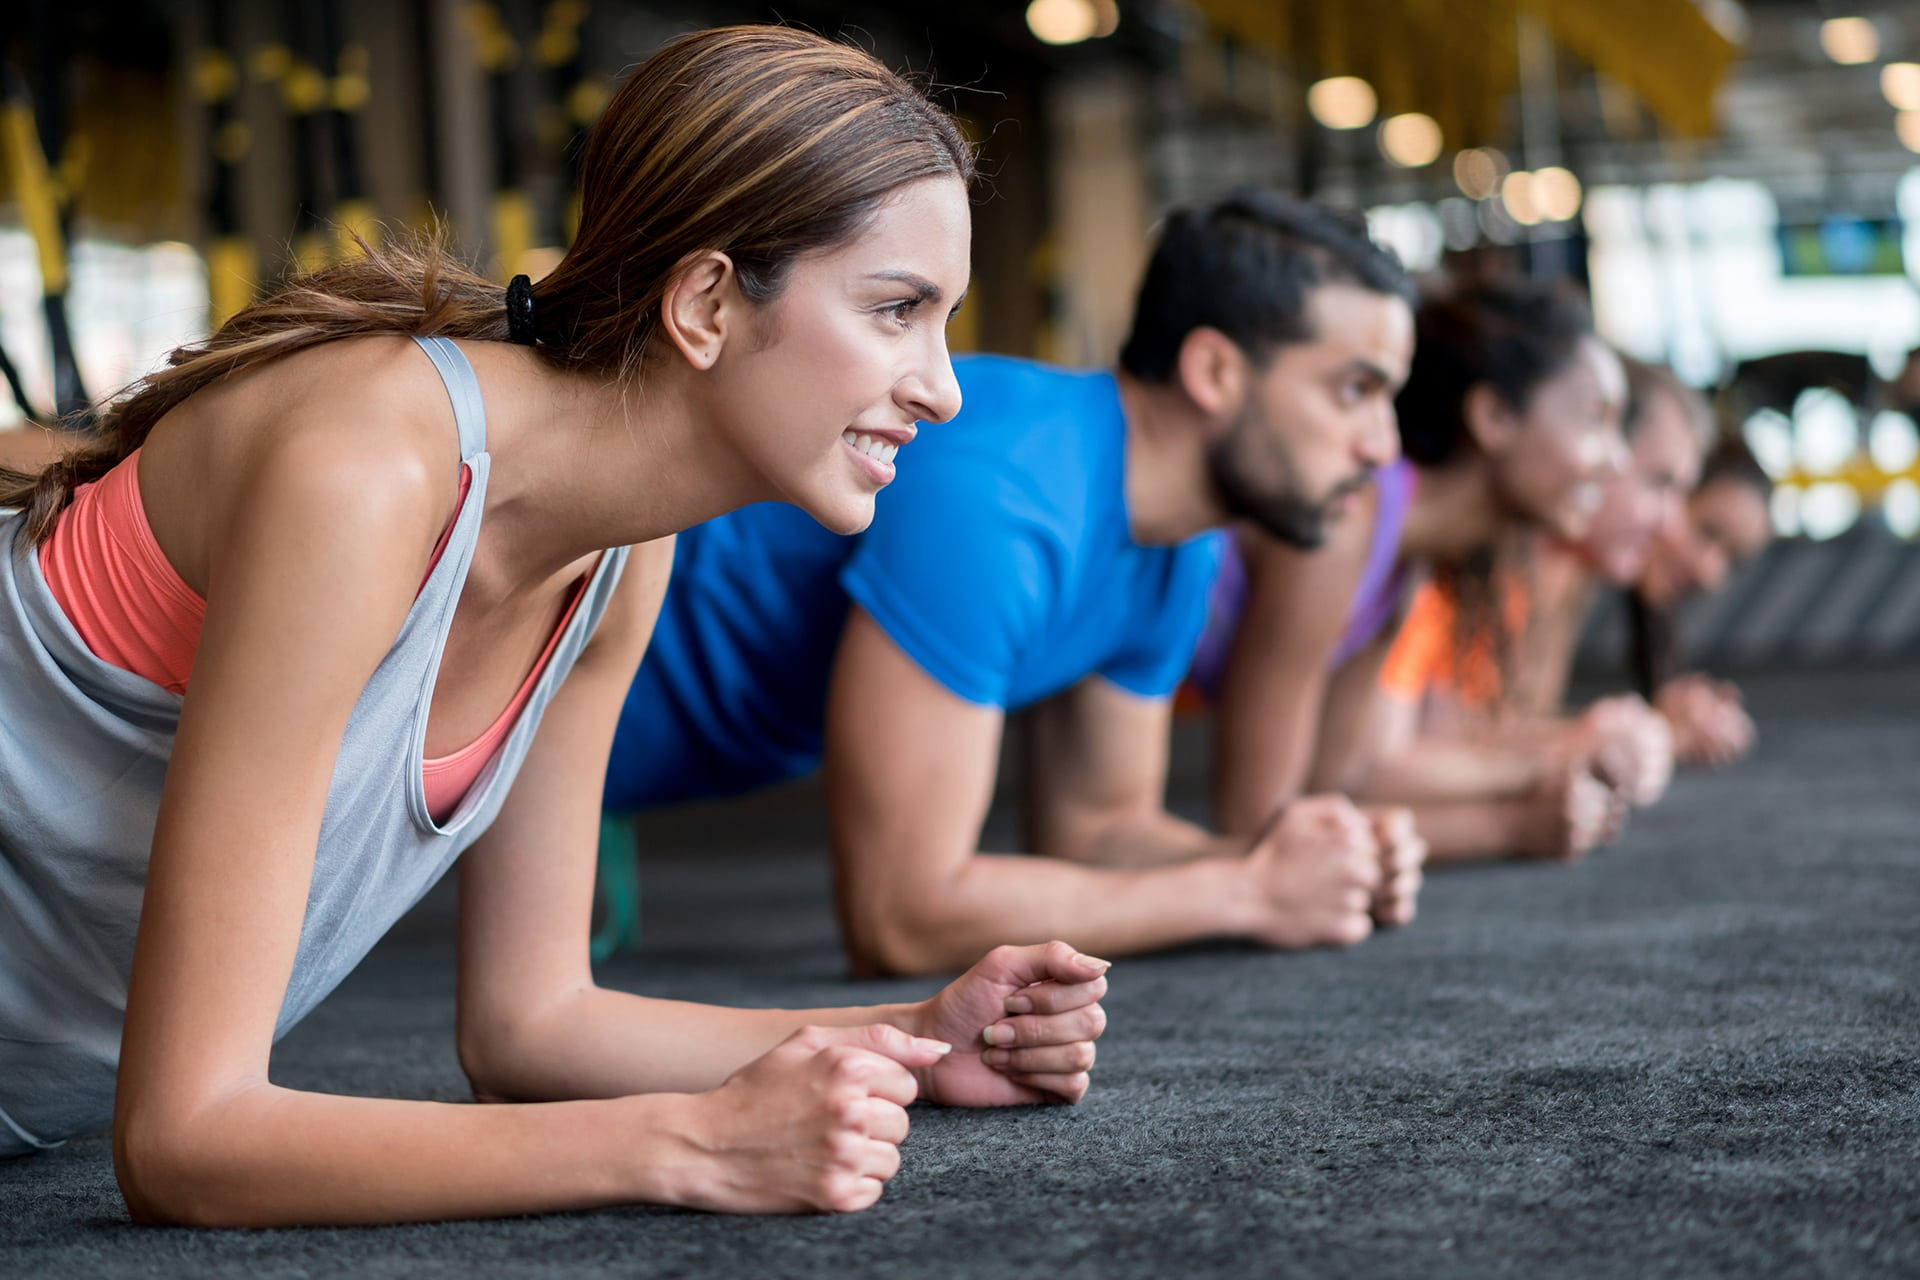 Diverse group of people plank in a gym class studio